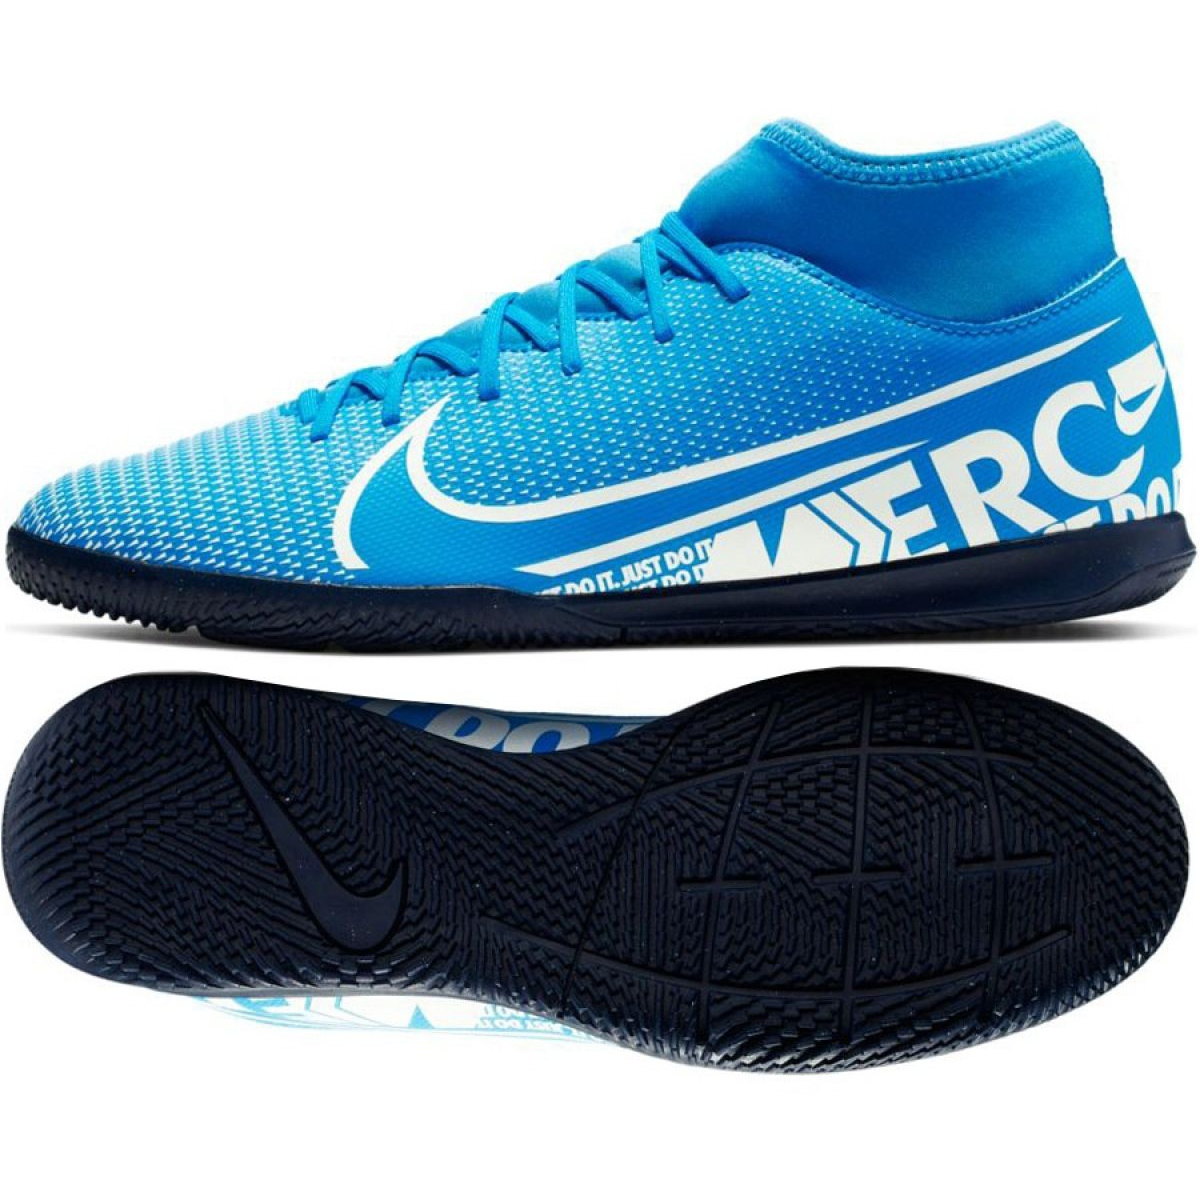 Details about Halls Shoes Nike Mercurial Superfly 7 Club IC M AT7979 414 Blue Blue show original title